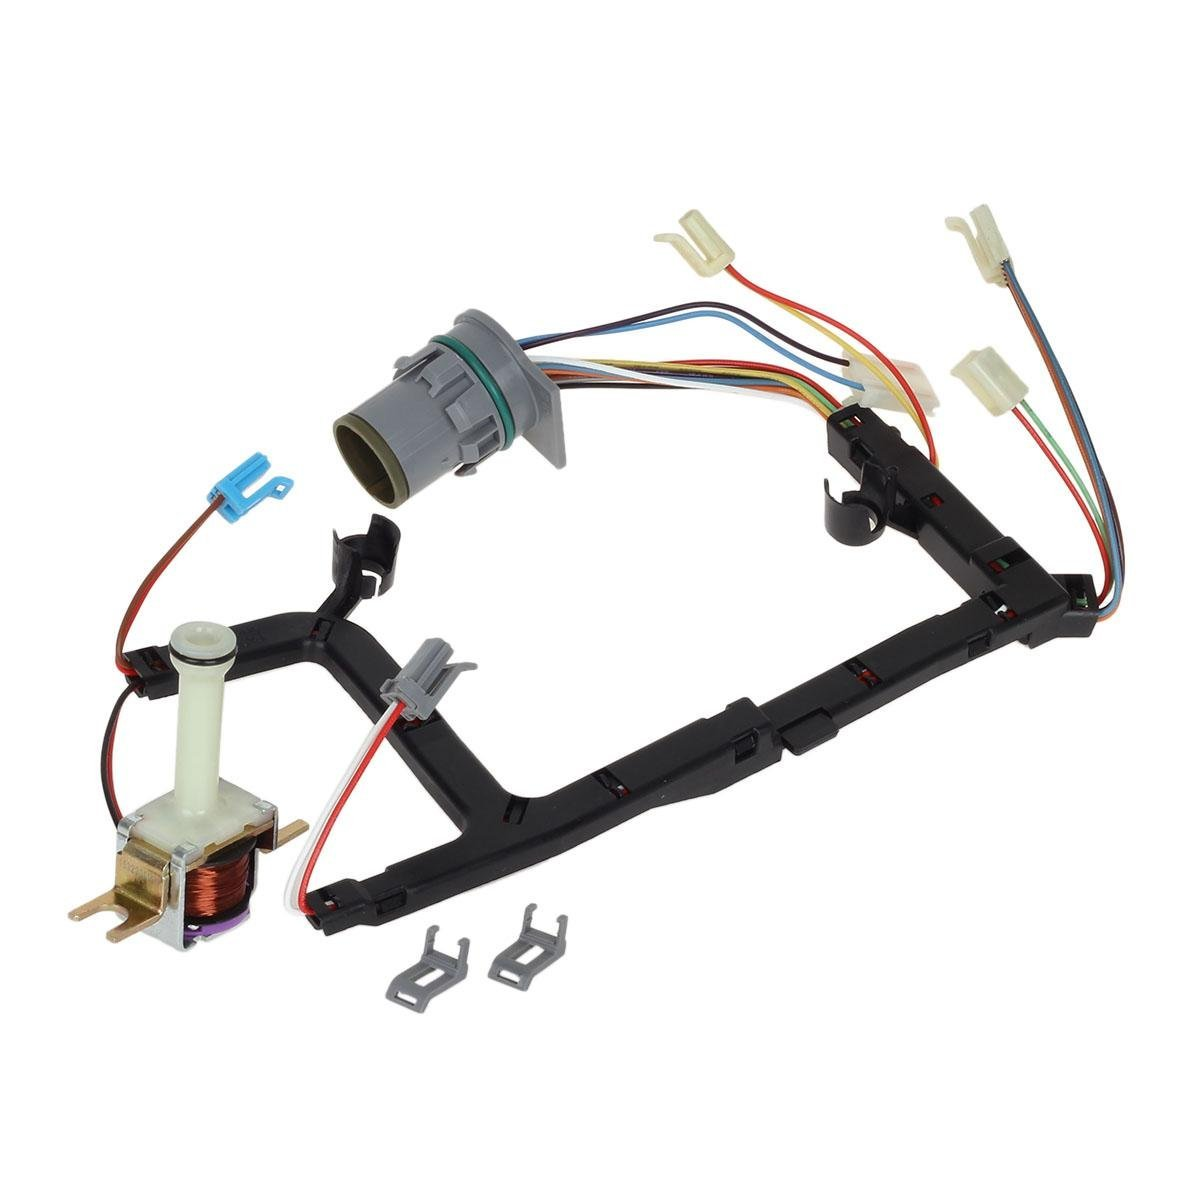 medium resolution of universal 4l60e transmission solenoid internal wire harness with tcc for 1993 2002 gm